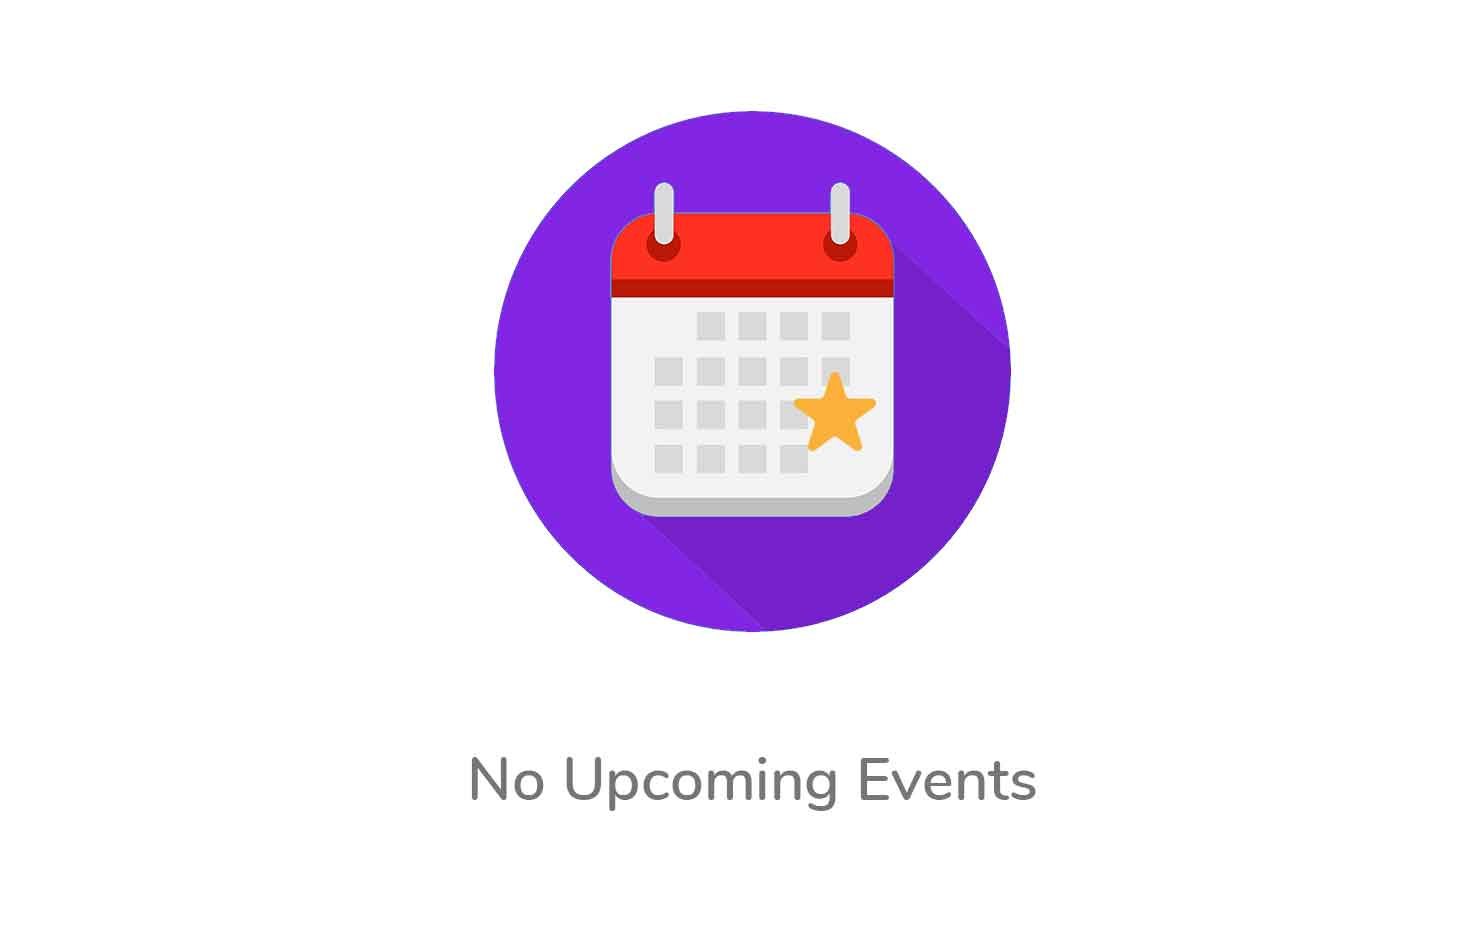 No Upcoming Events